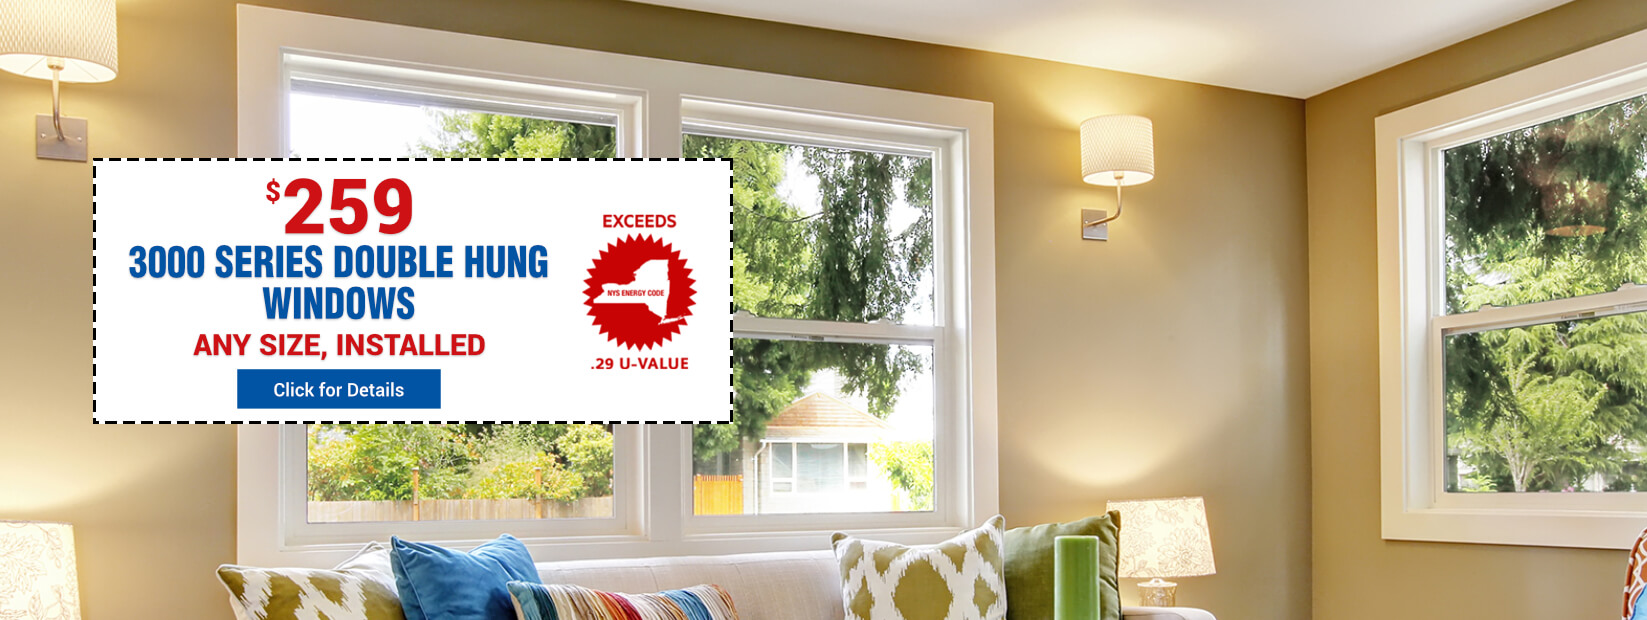 3000 Series Double Hung Windows at $259